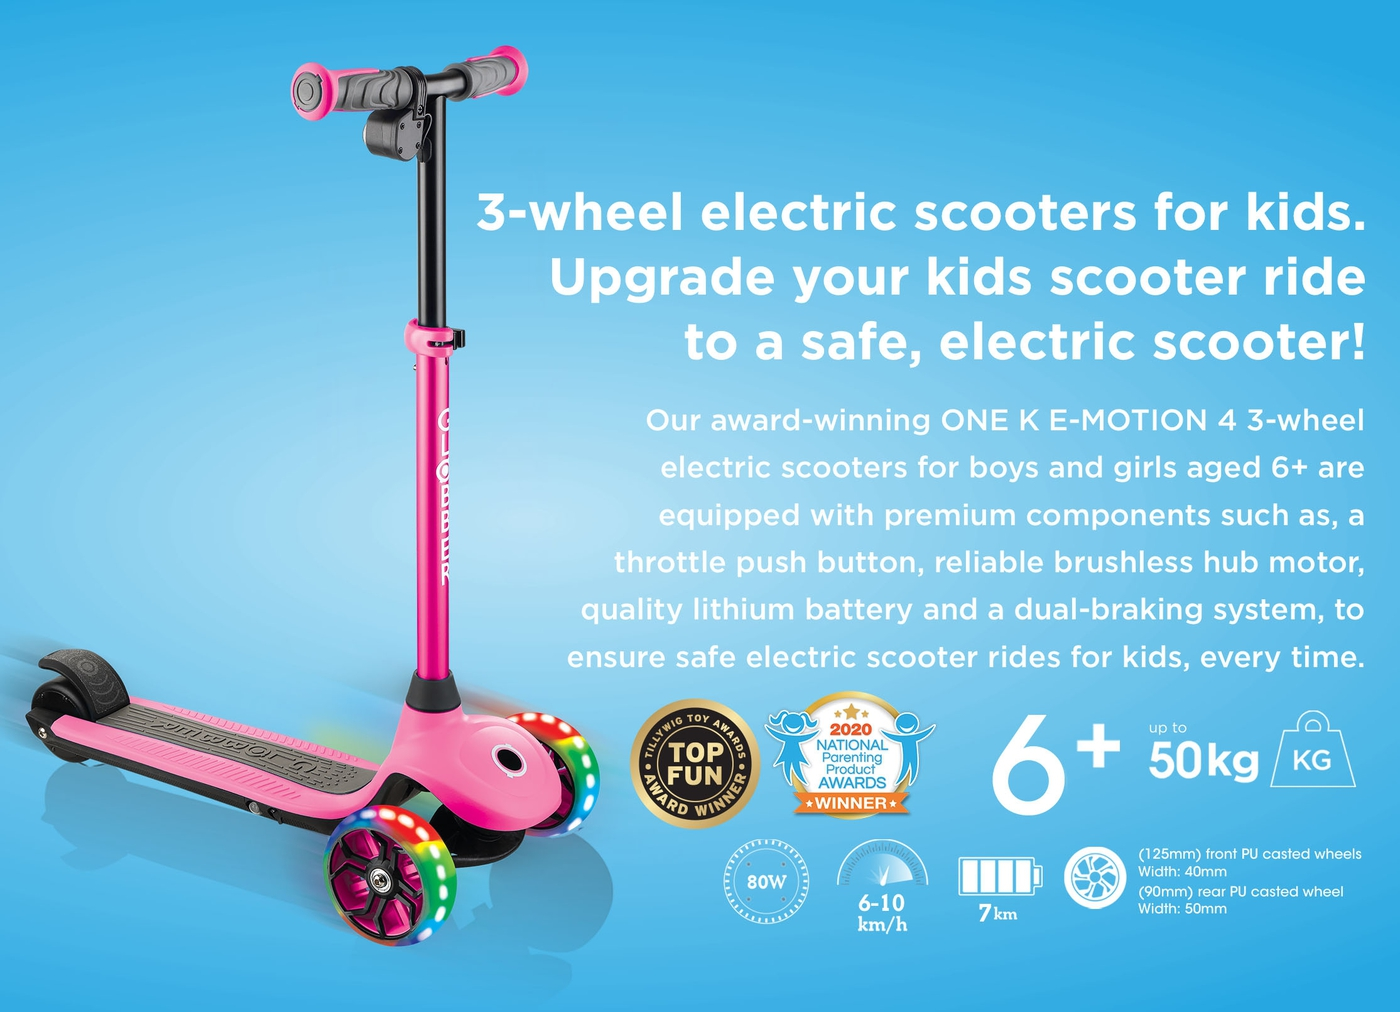 Globber-ONE-K-E-MOTION-4-3-wheel-electric-scooter-for-boys-and-girls-with-throttle-push-button